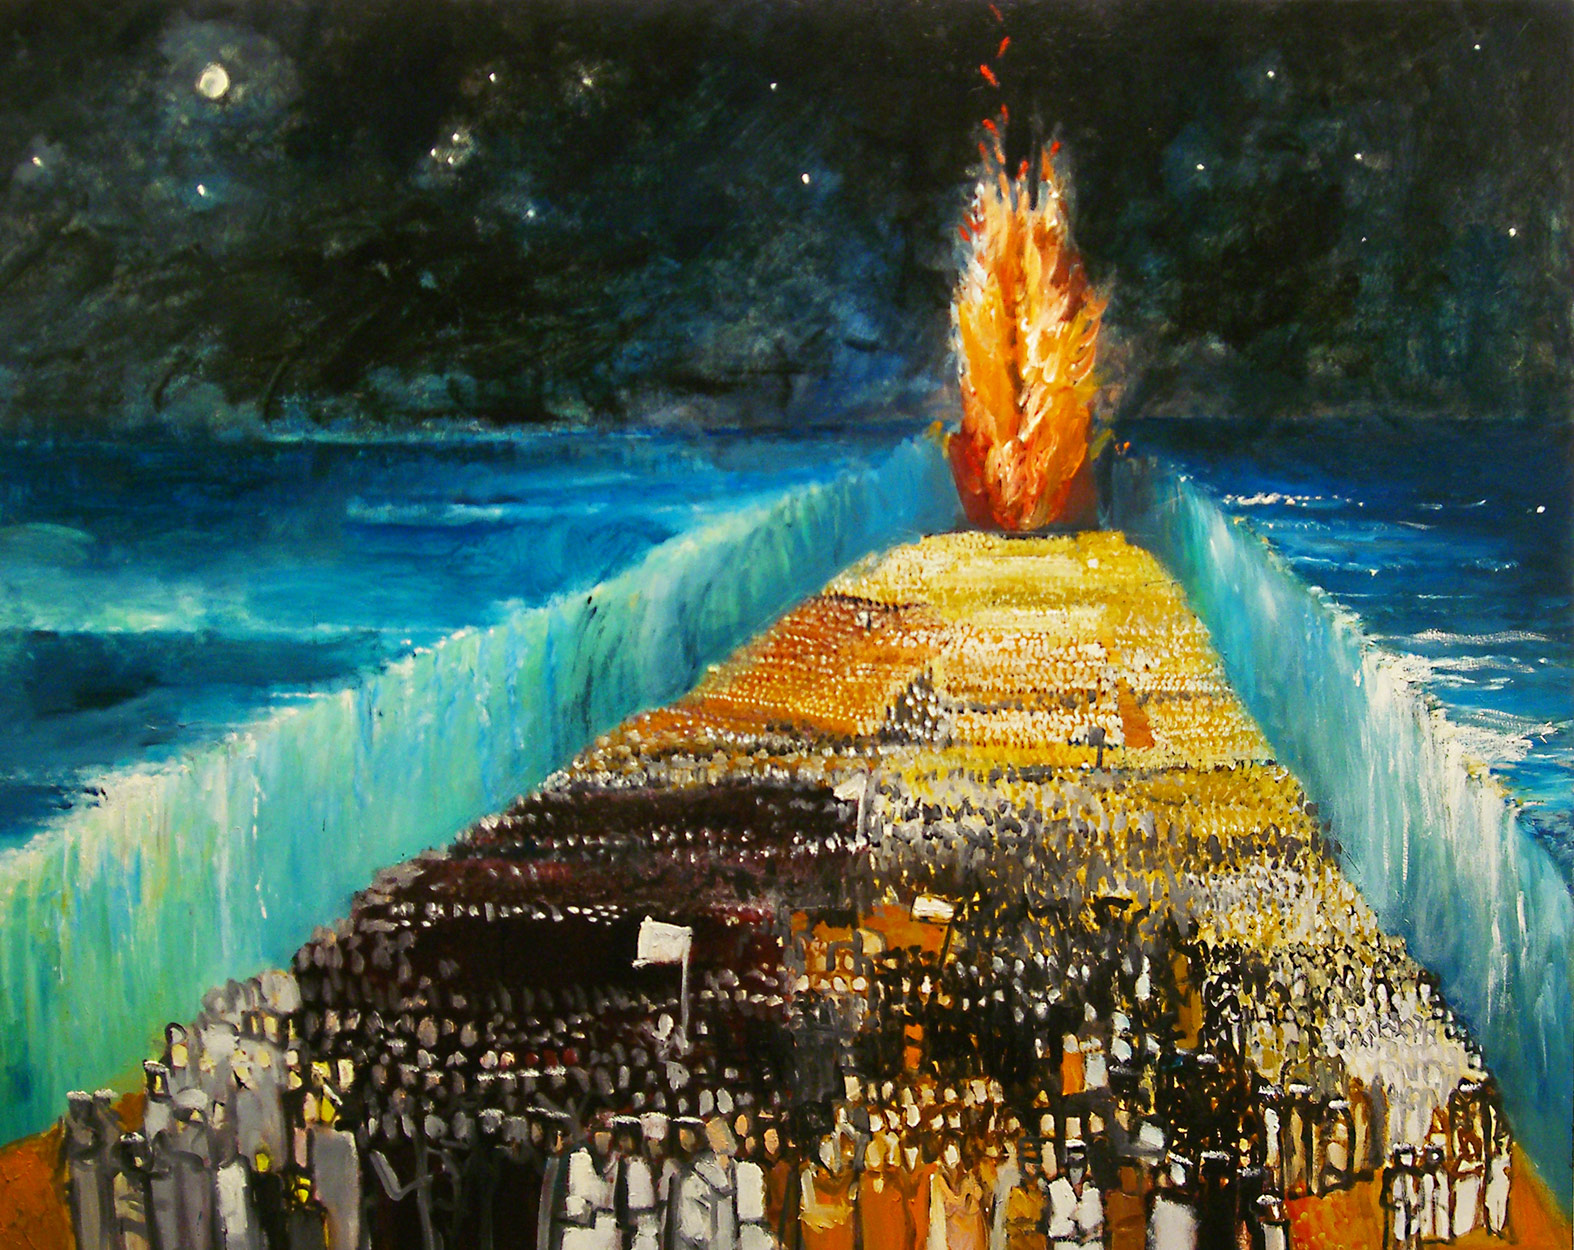 Exodus by Richard McBee